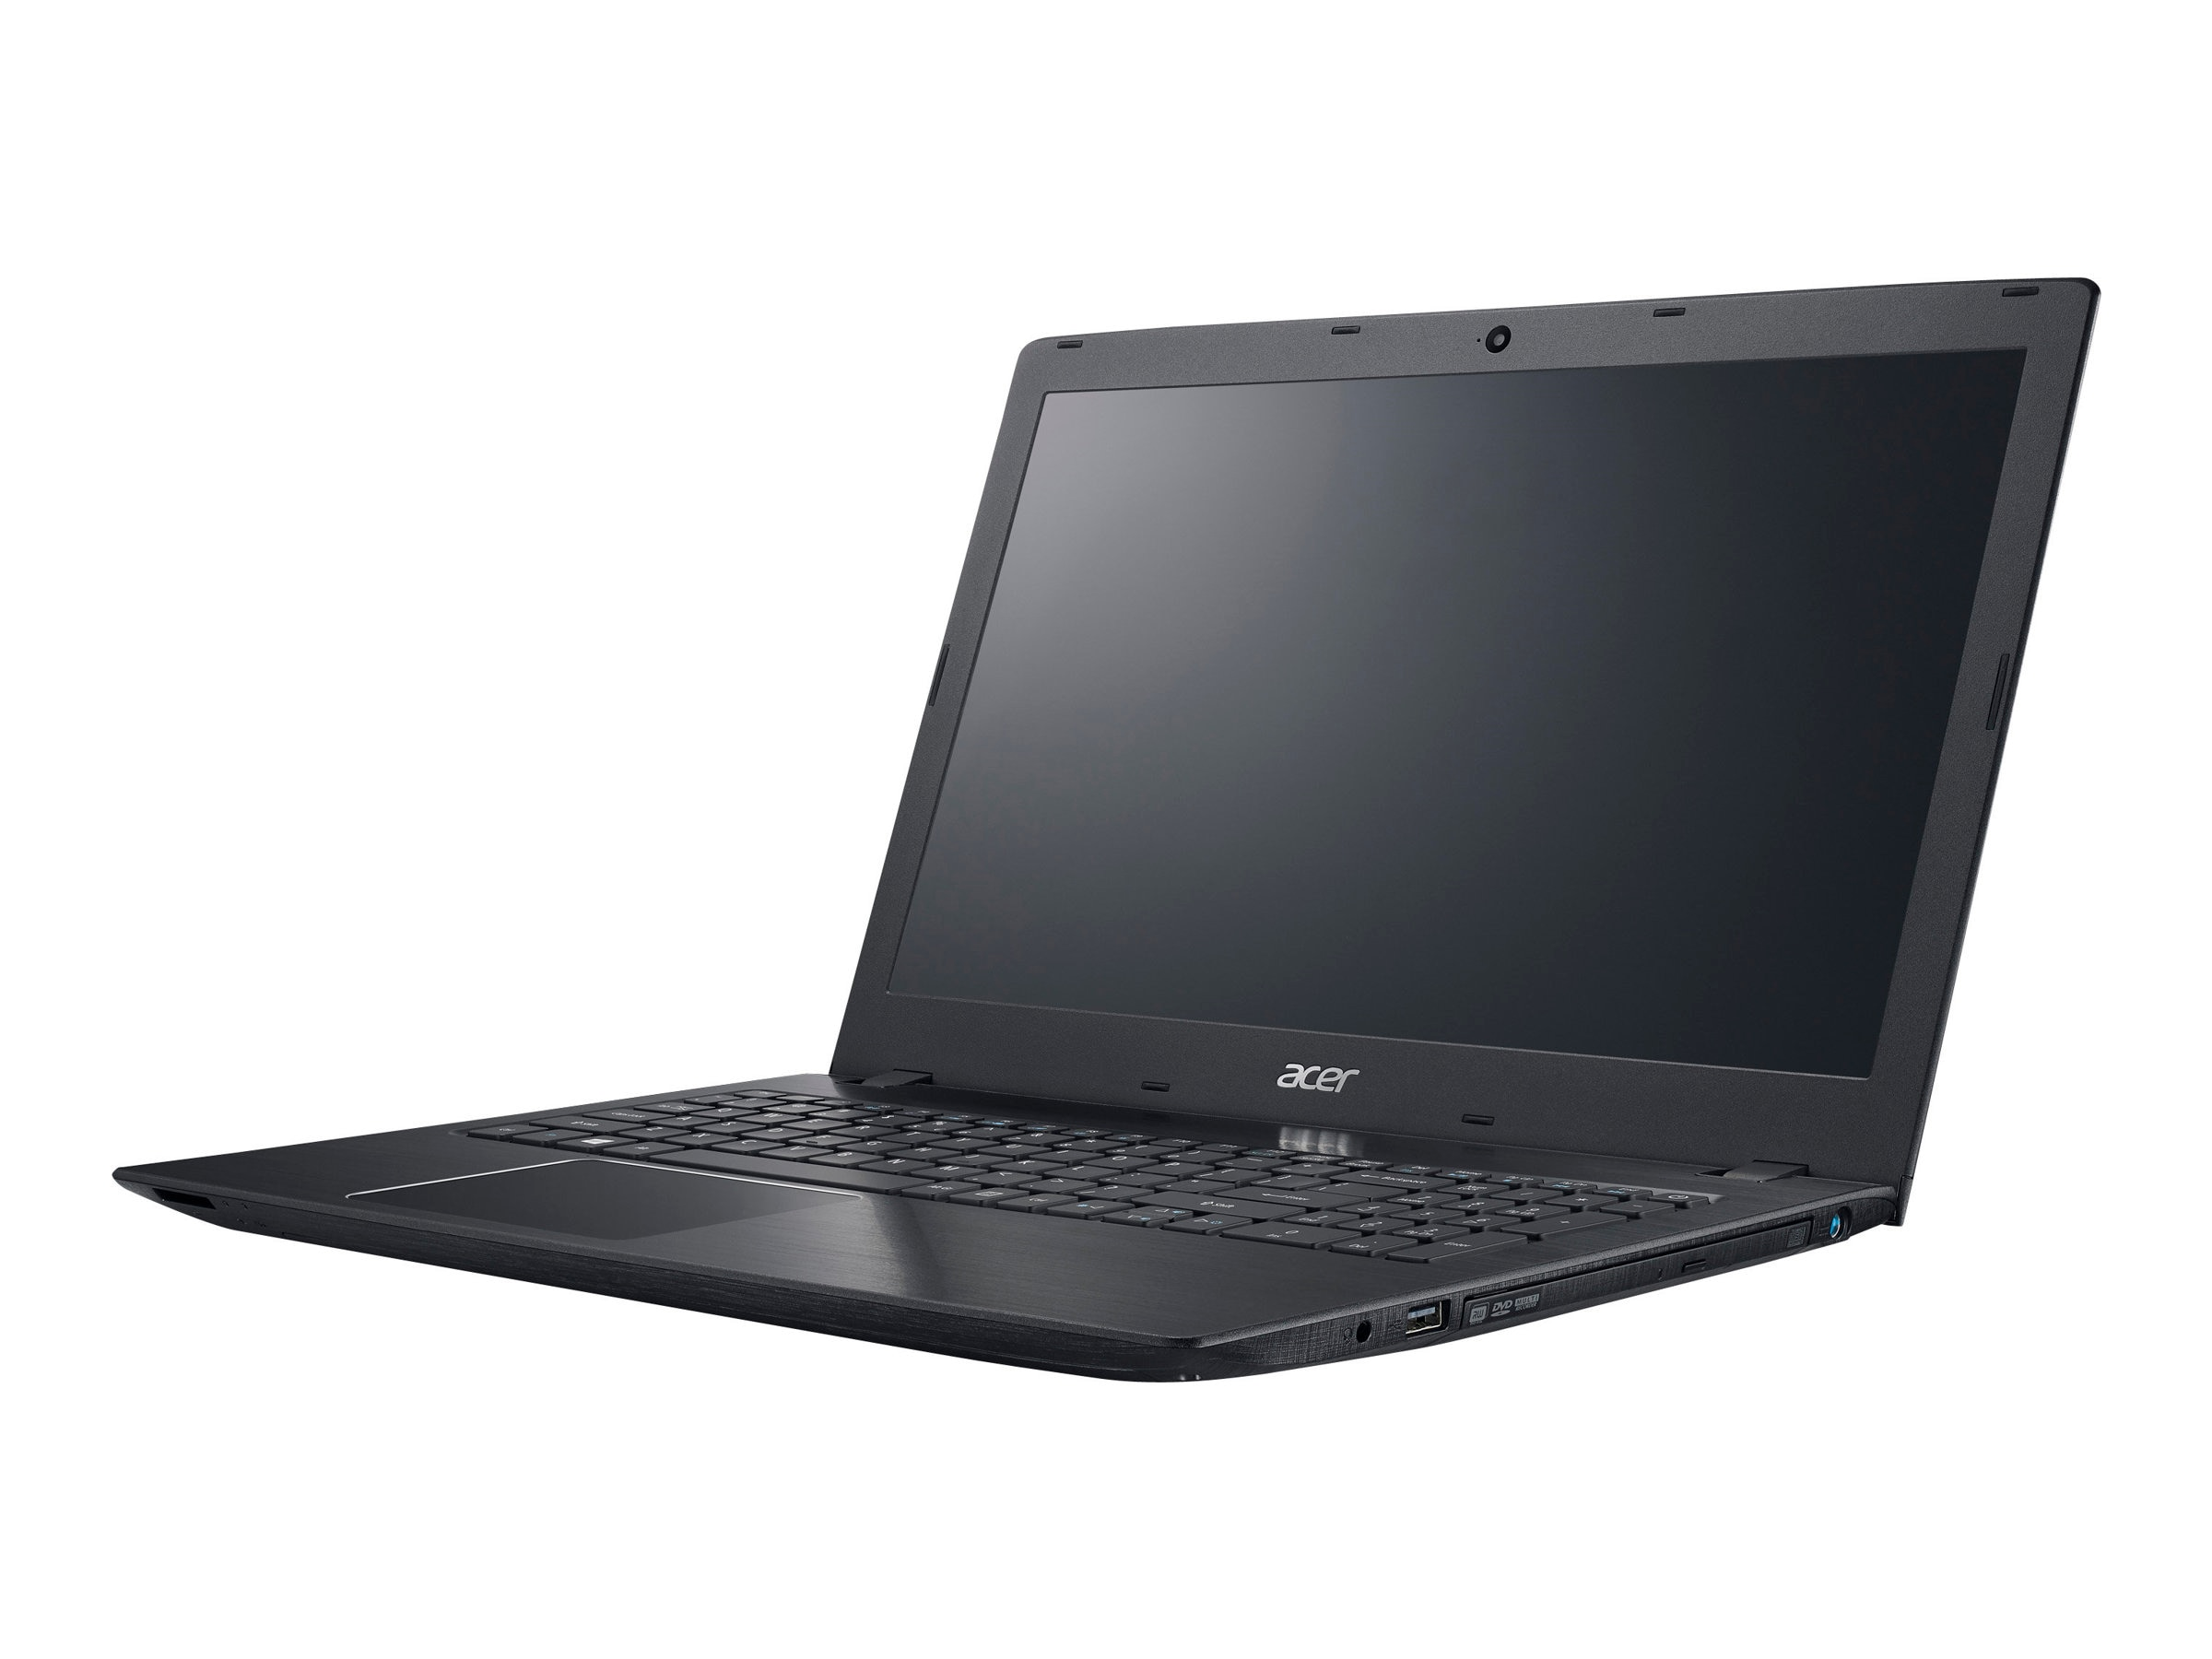 Acer Aspire E5-523-97JY 2.9GHz A9 15.6in display